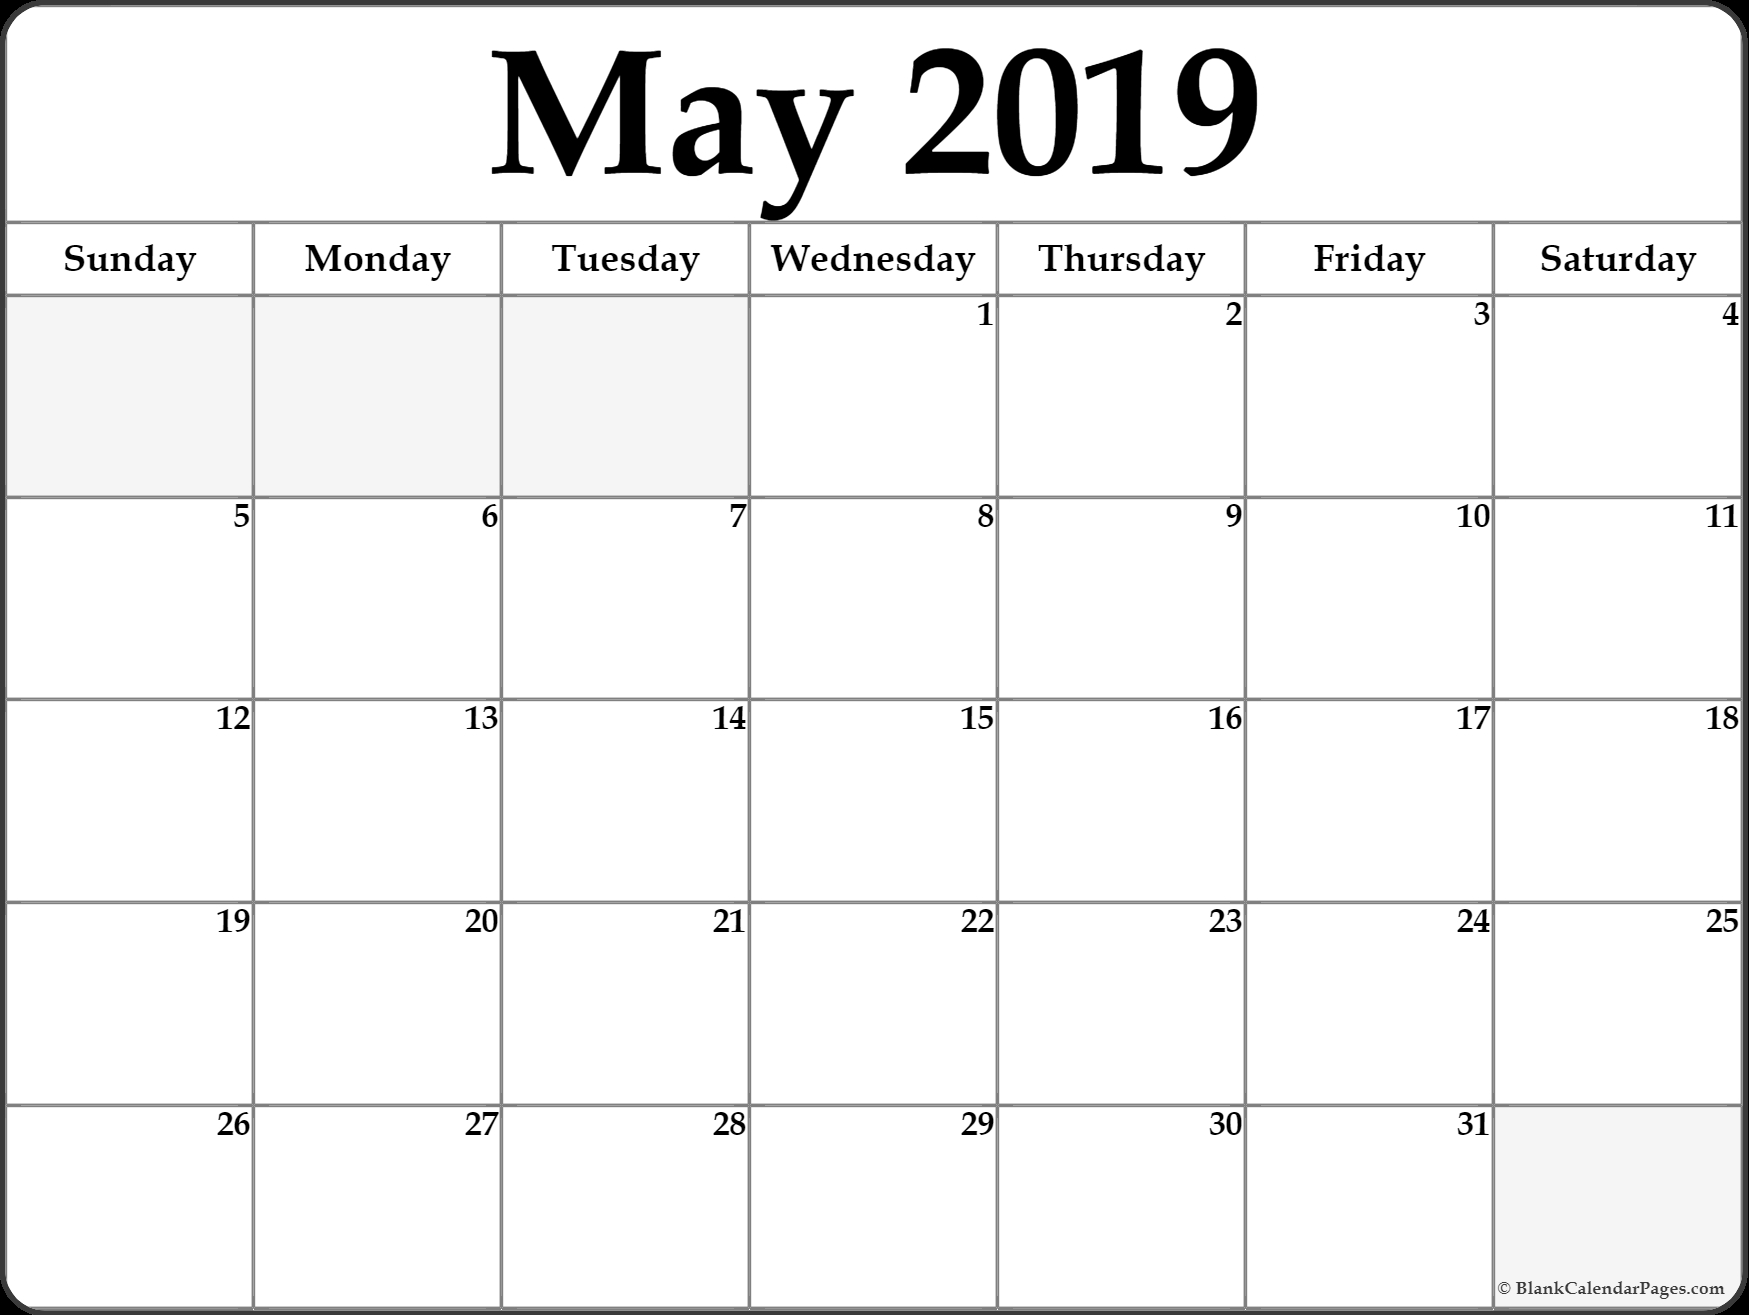 may 2019 calendar printable template site provides calendar::May 2019 Blank Template